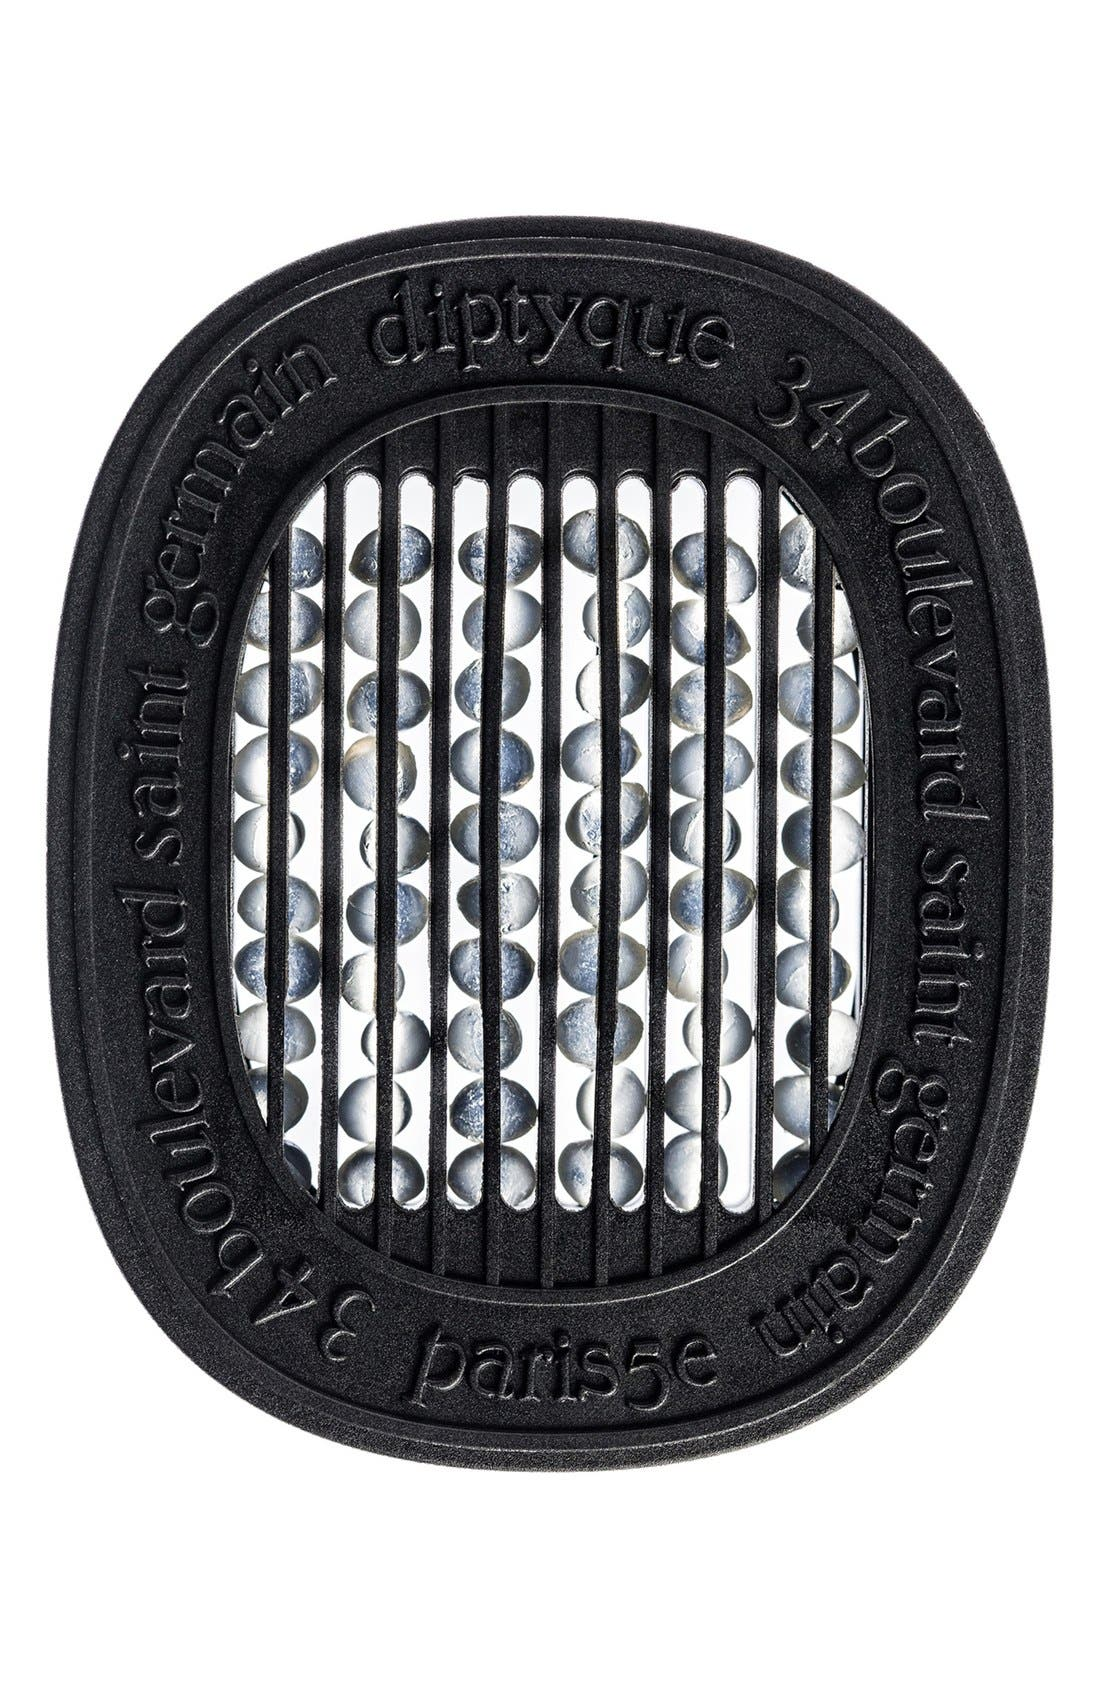 diptyque 'Ambre' Electric Diffuser Cartridge